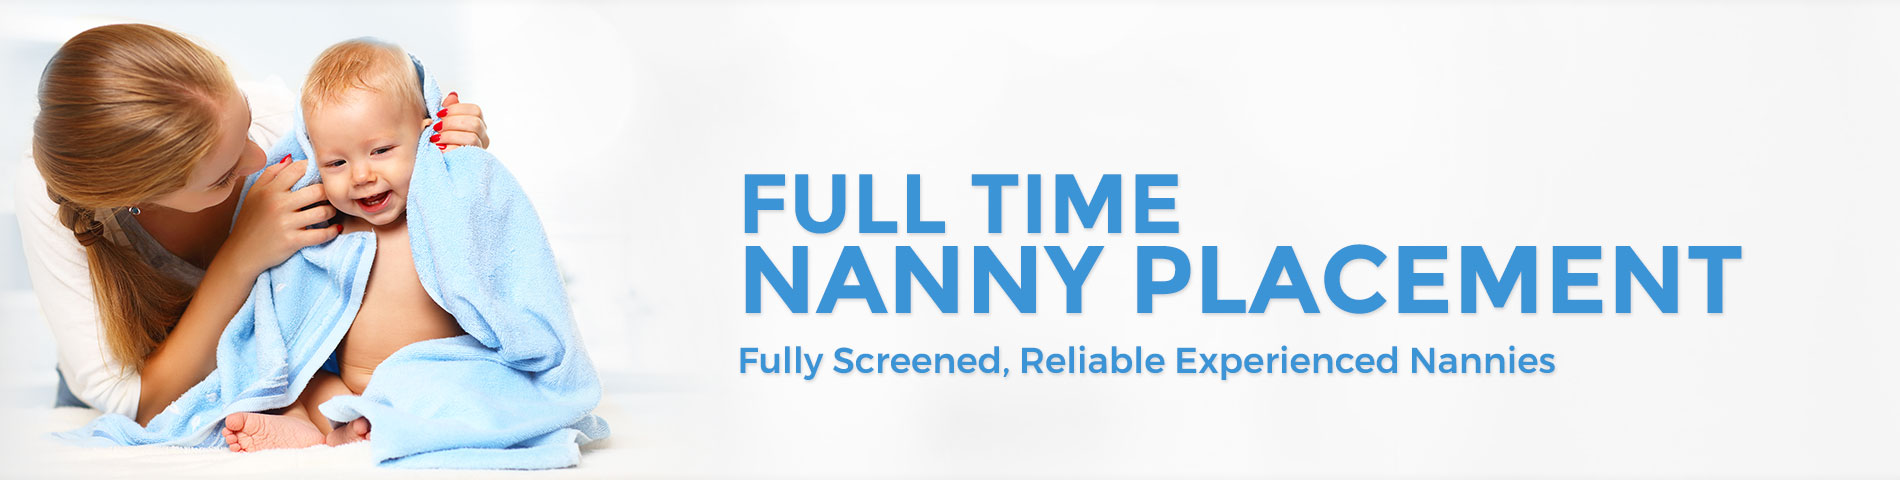 Full Time Nanny Placement